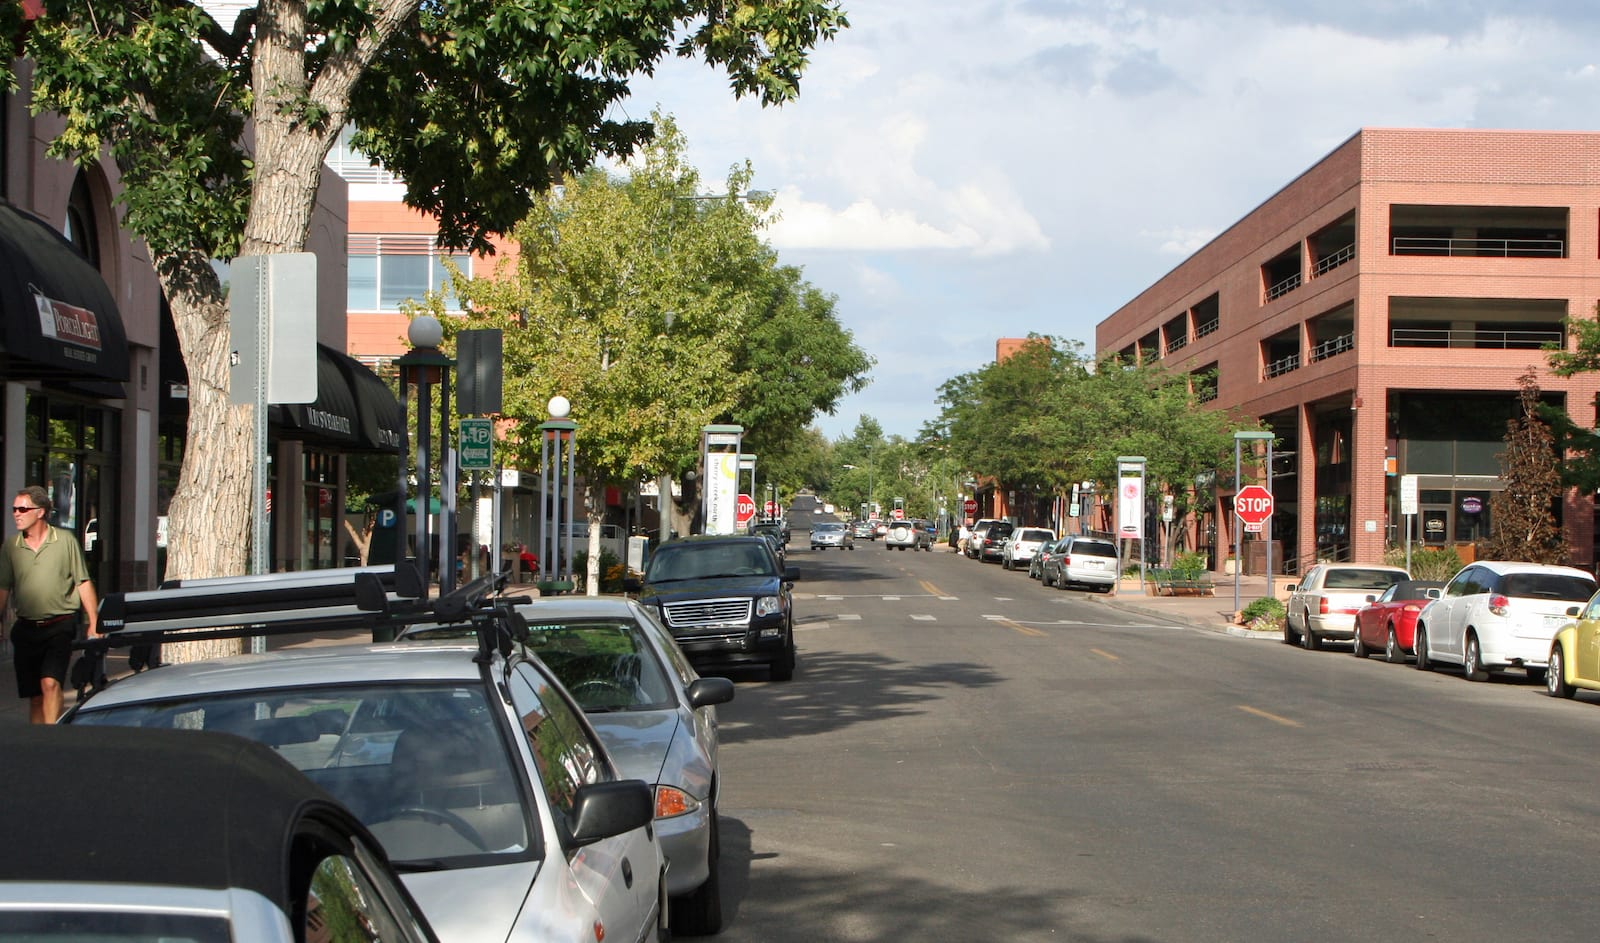 The Cherry Creek North neighborhood of Denver, CO